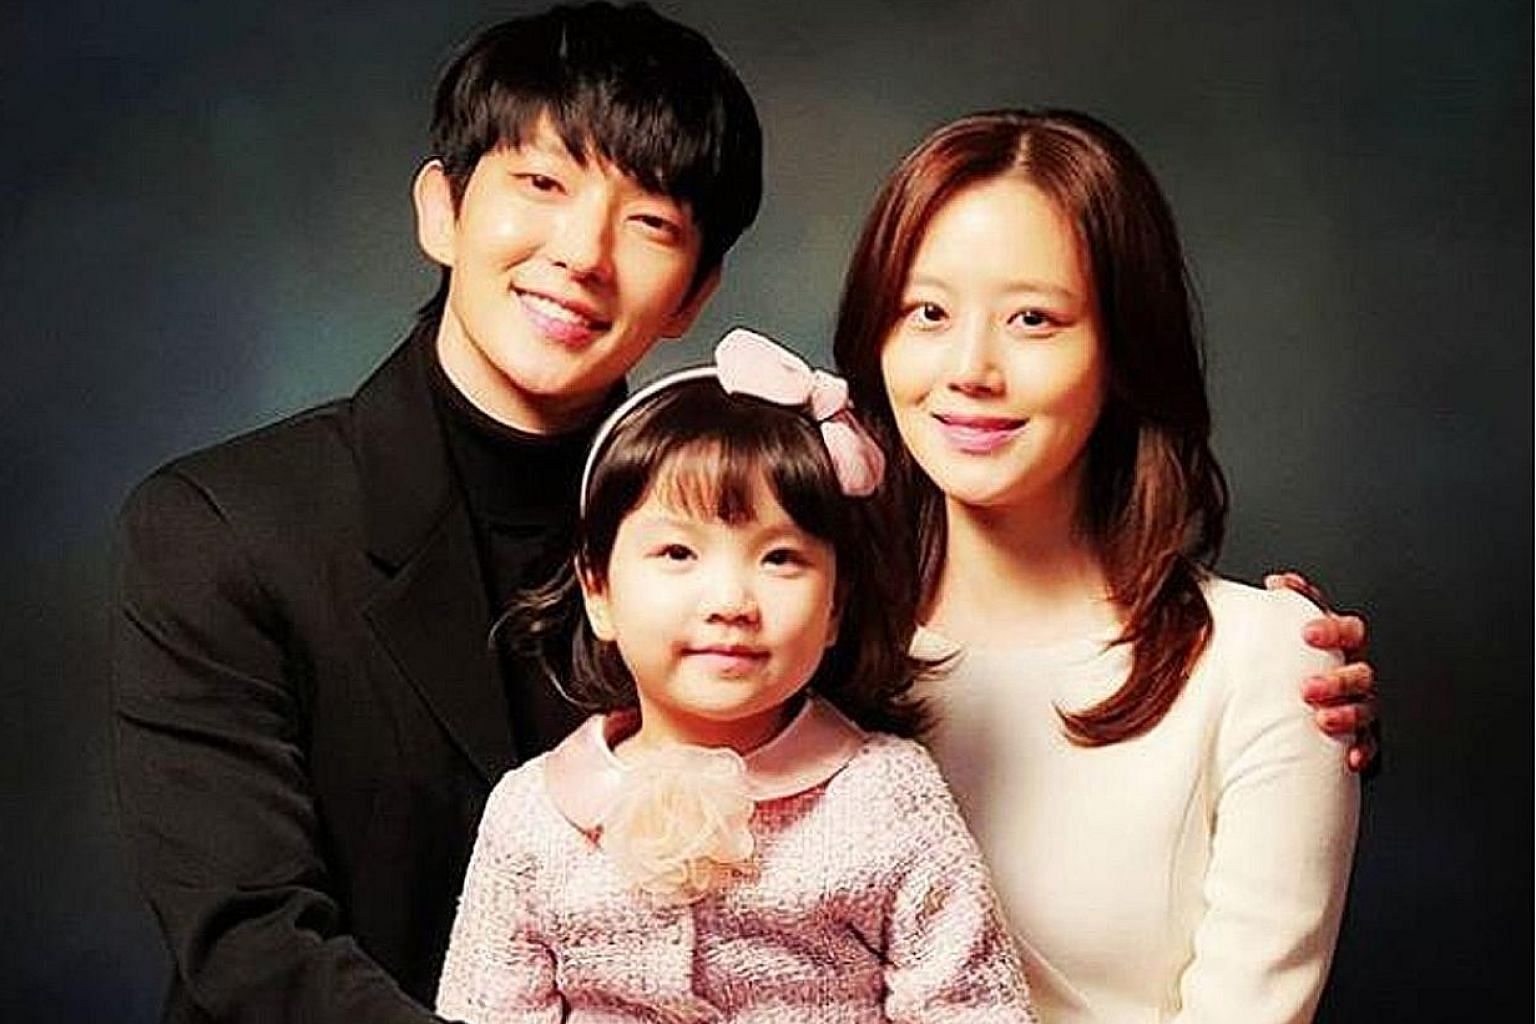 (From left) Lee Joon-gi, Jung Seo-yeon and Moon Chae-won play a seemingly perfect family in the thriller-romance Flower Of Evil.